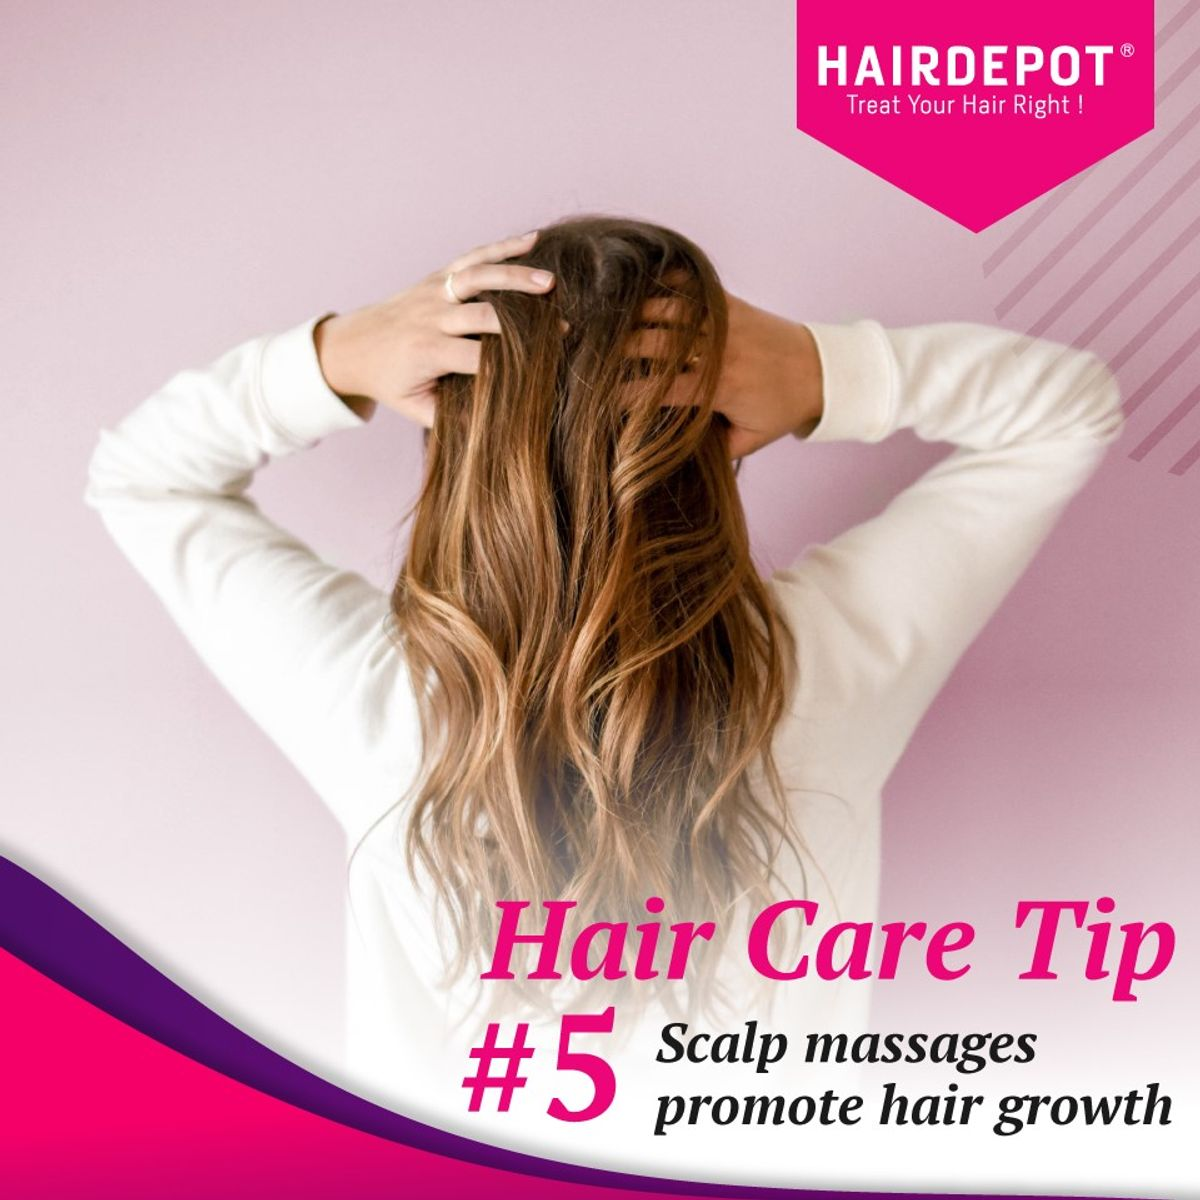 Hair Care Tip - Scalp Massages Promote Hair Growth